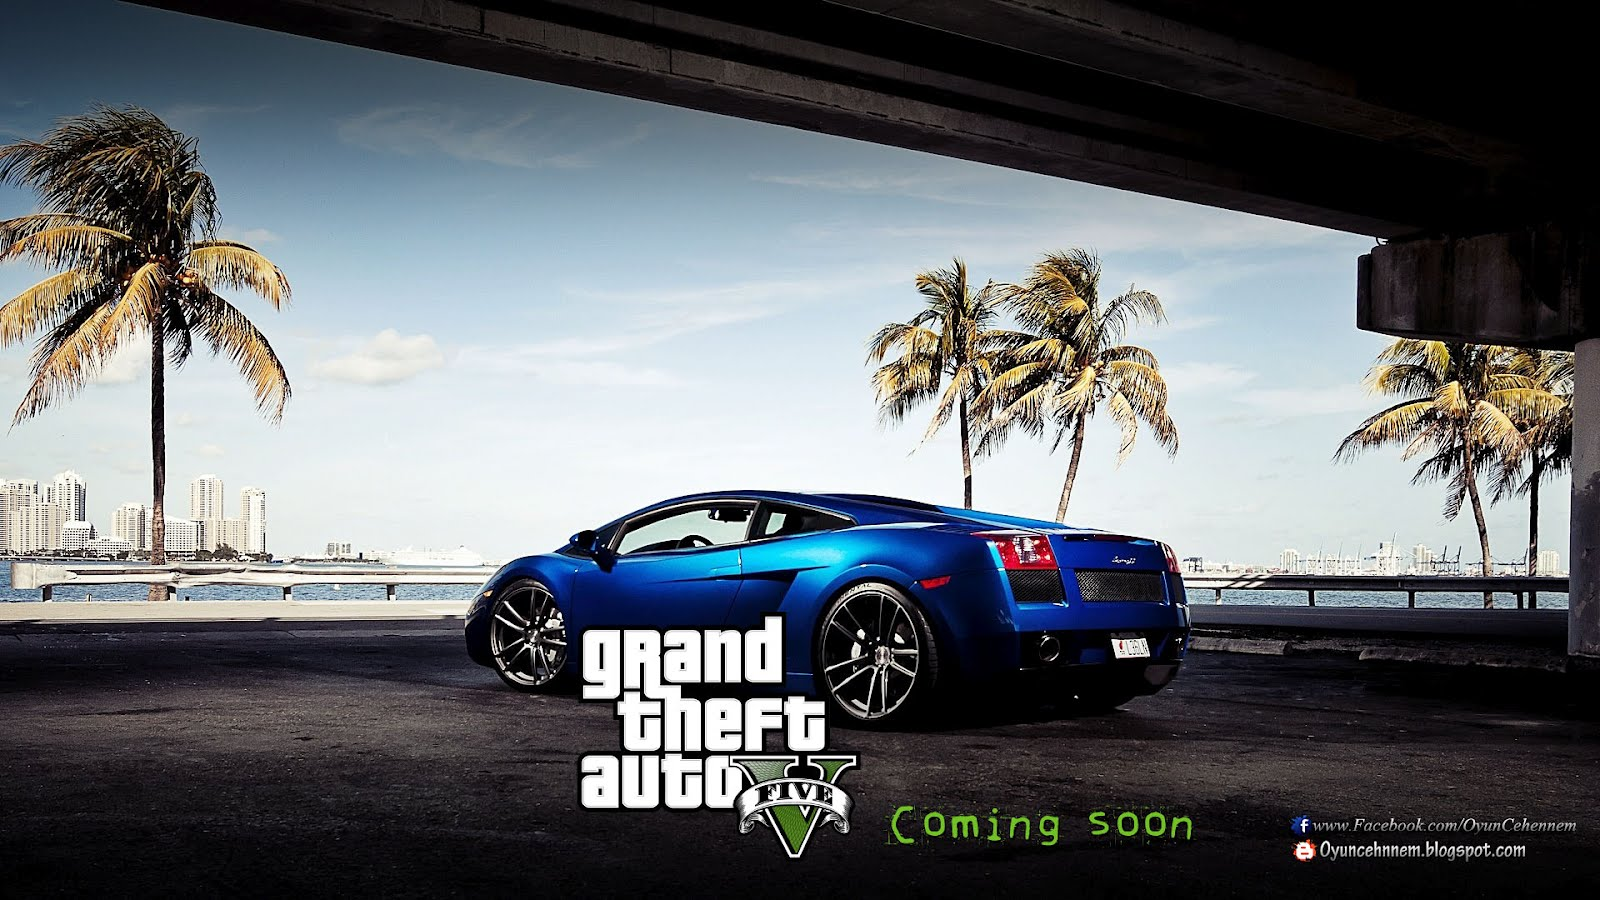 GTA 5 HD Wallpapers GTA5 GTA V grand theft auto 5 grand theft auto v 1600x900